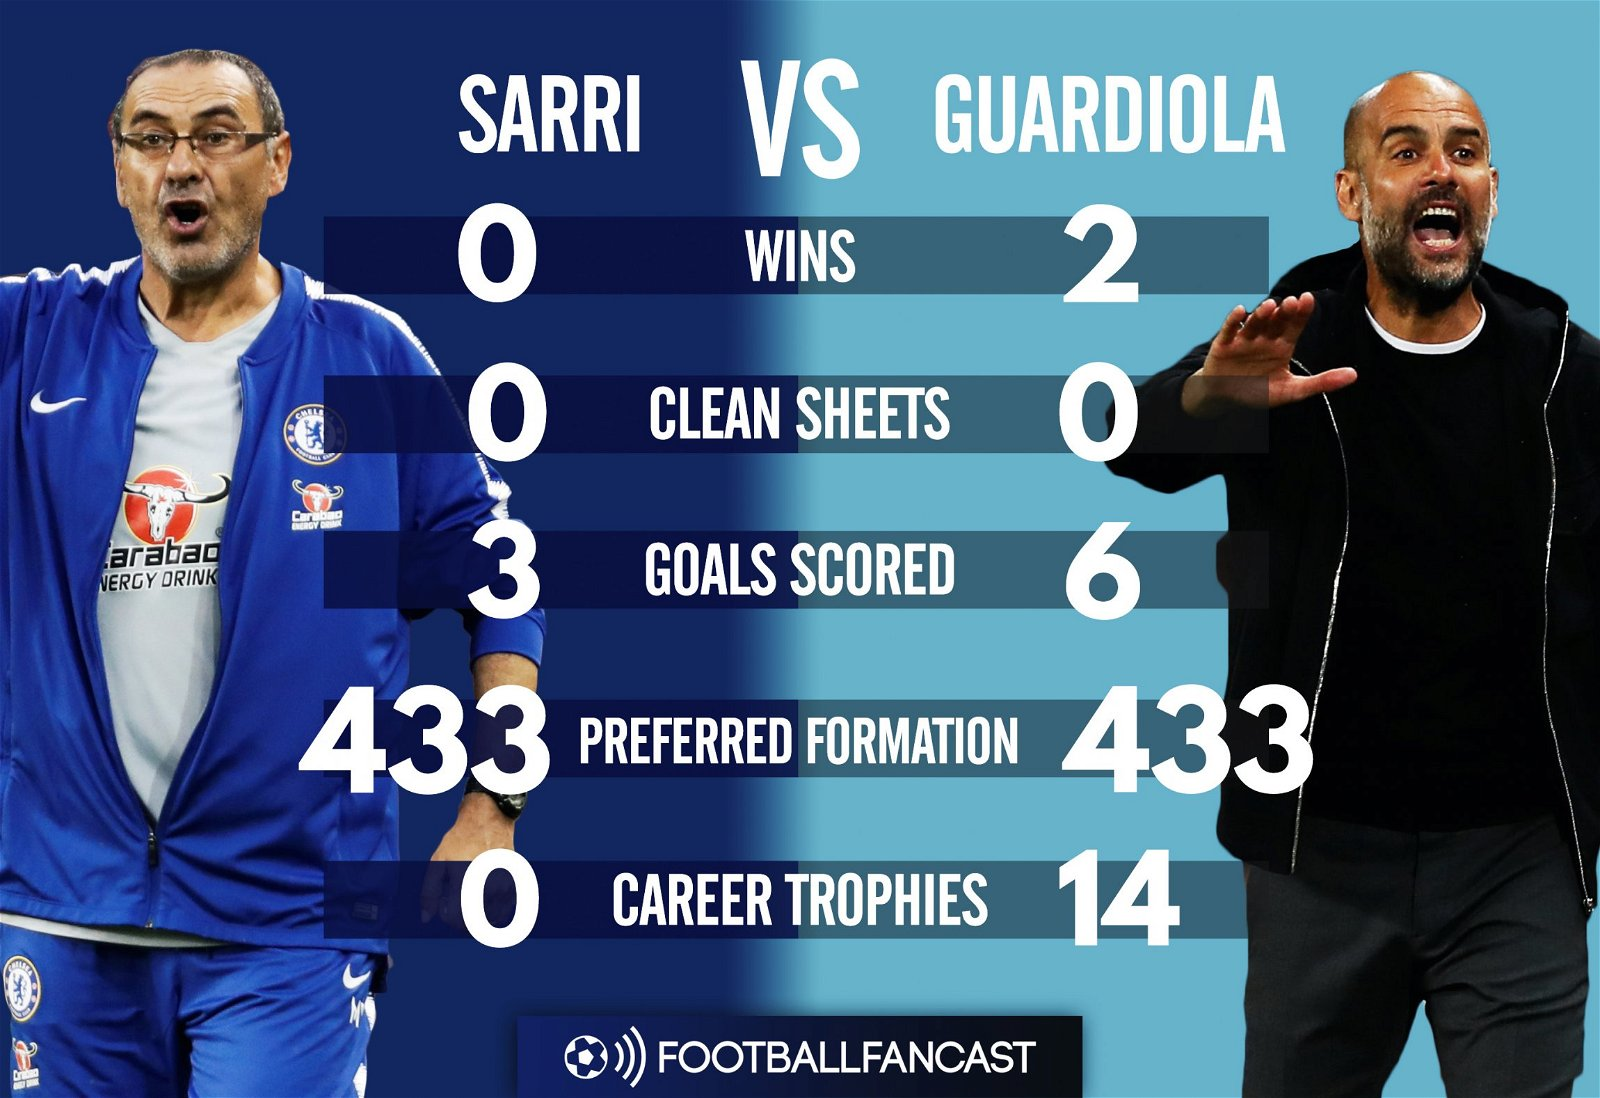 Maurizio Sarri vs Pep Guardiola - Head-to-Head